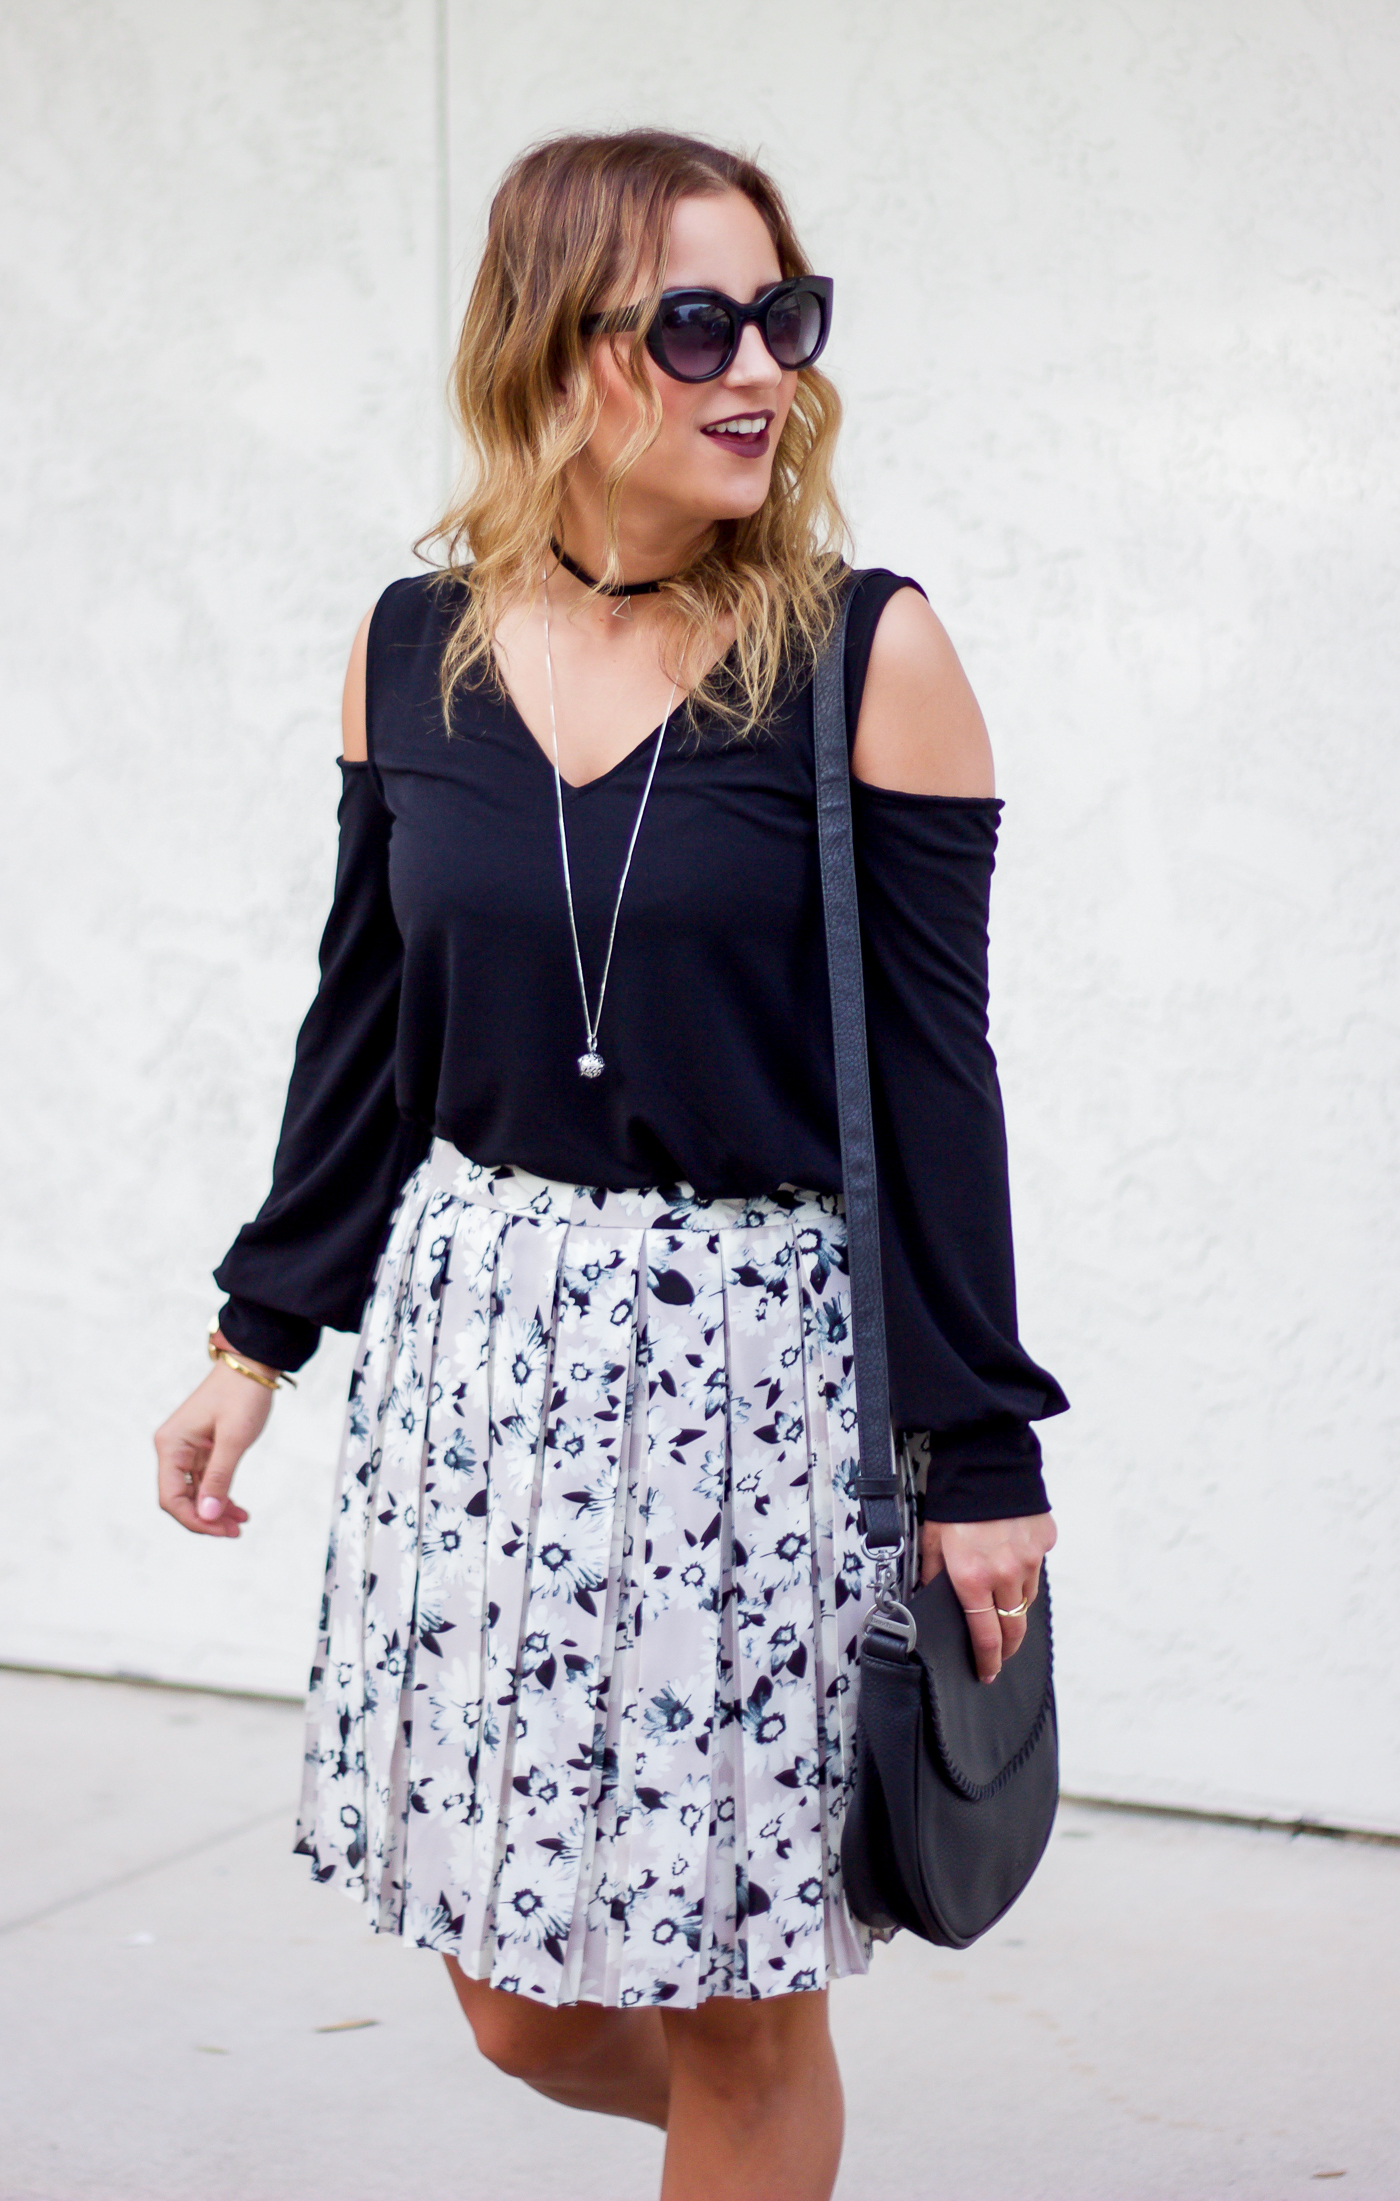 Jackie of Something About That is a fashion blogger, wearing a cold shoulder top from Express with a floral skirt from Banana Republic